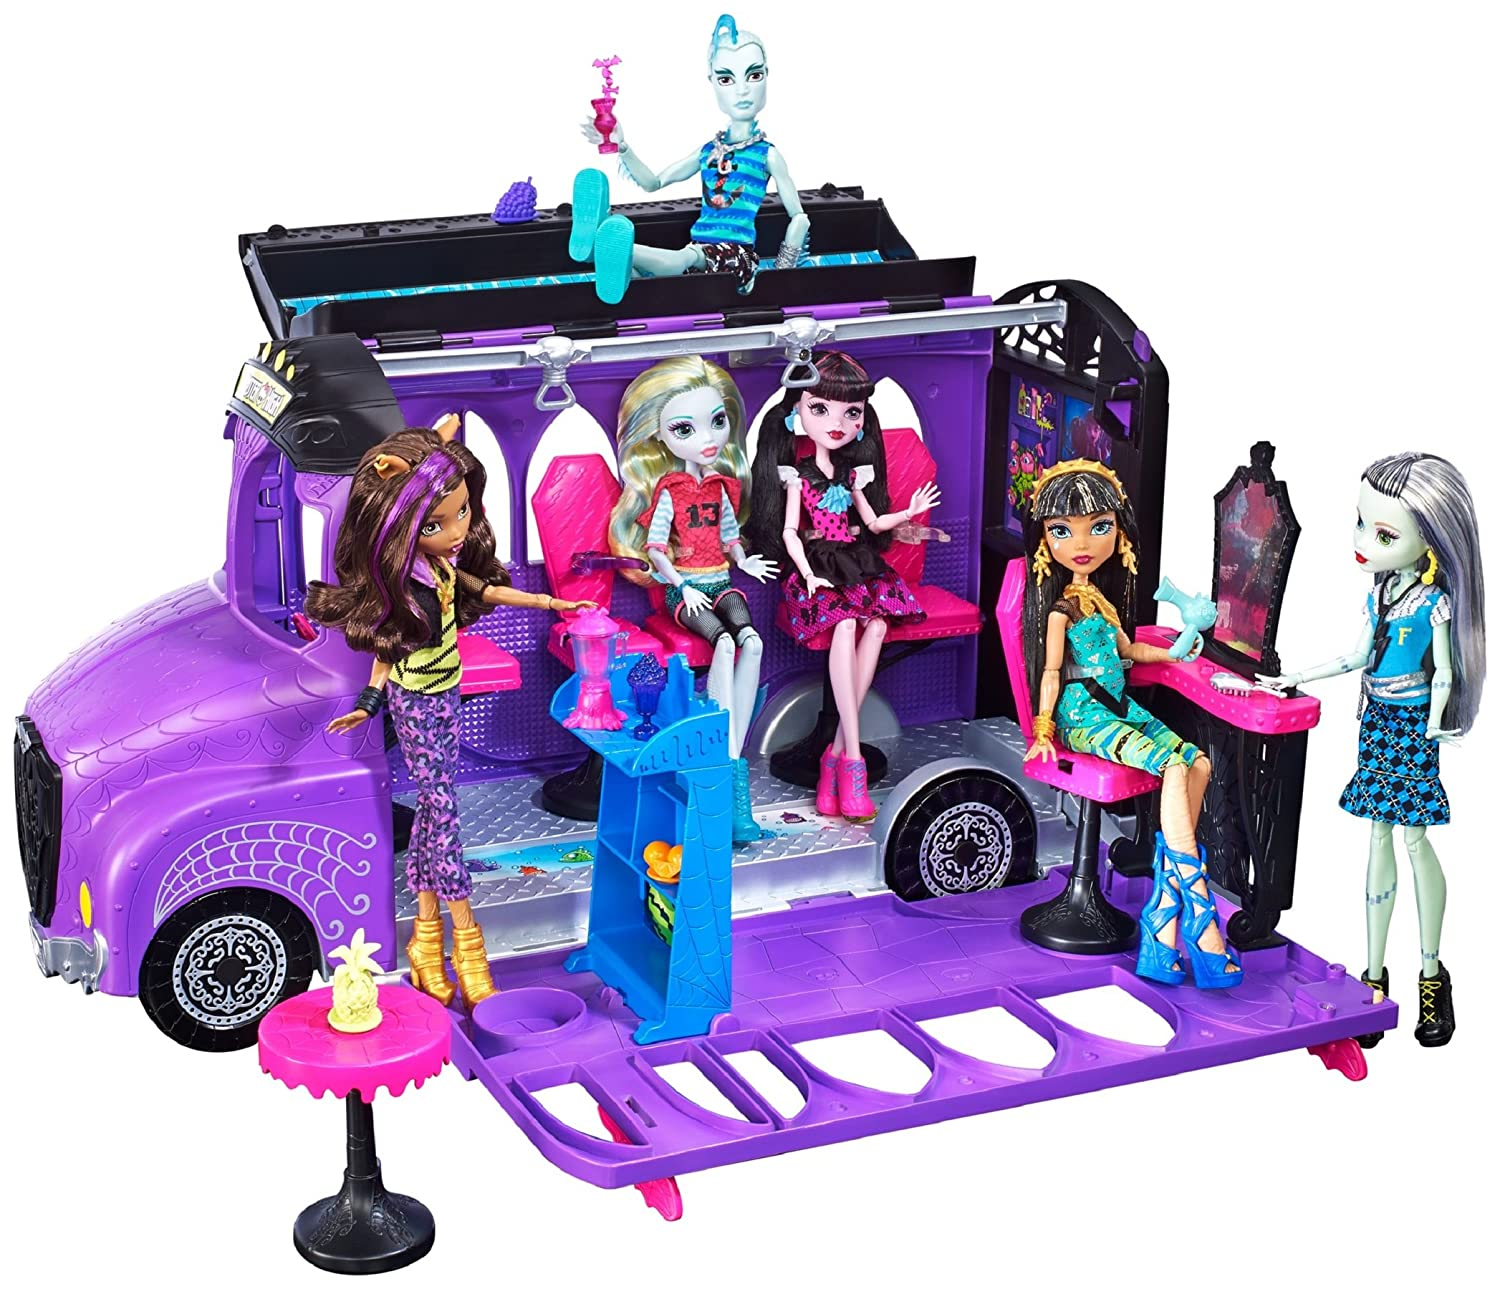 Monster High Mattel FCV63 - Deluxe Bus and Mobile Salon Toy Playset - Pedicure Station Pool - Fashion Doll